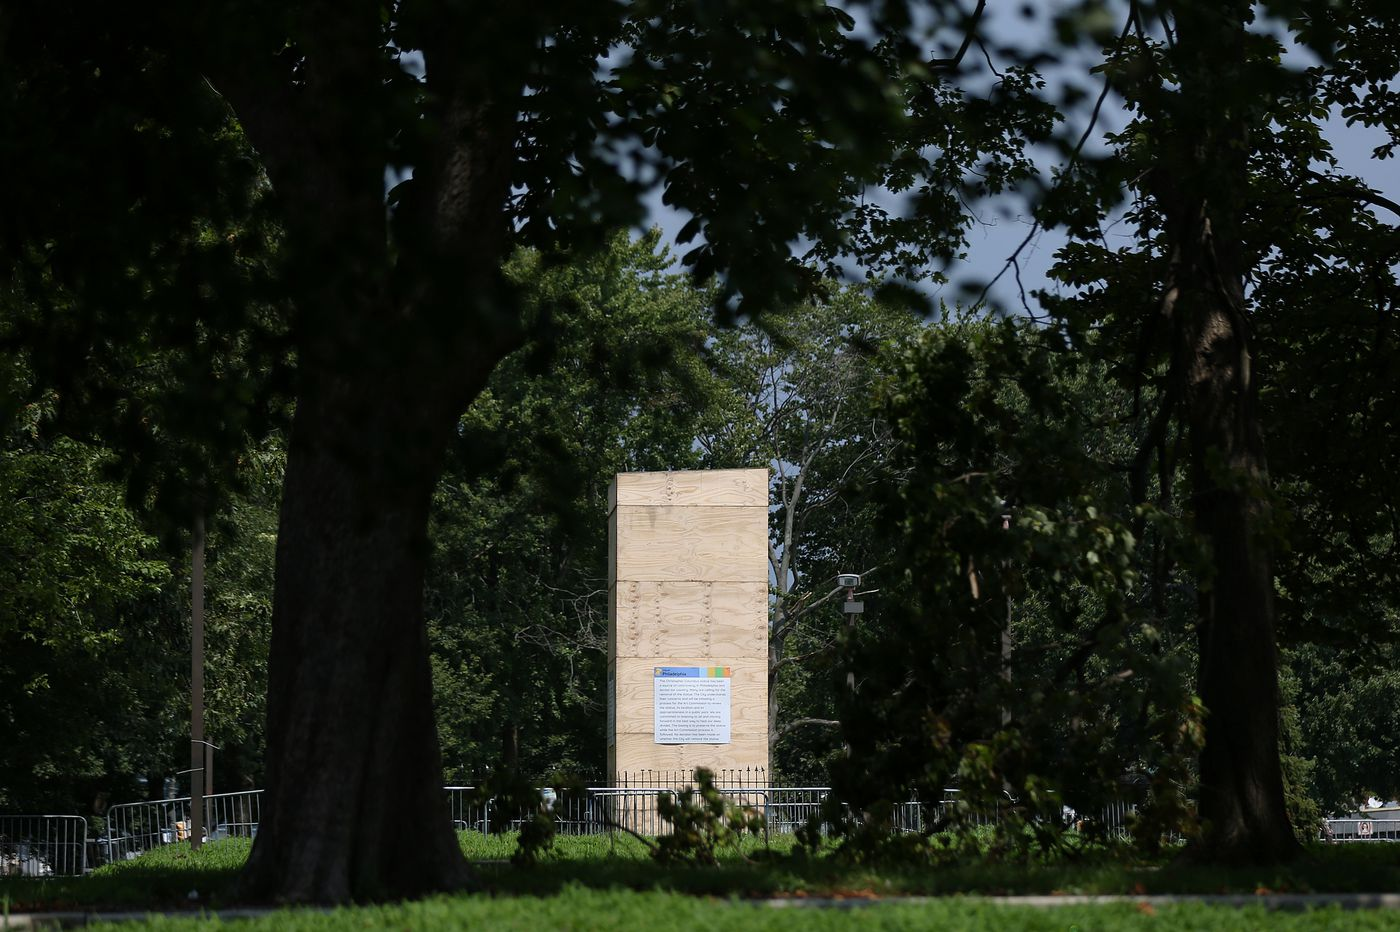 Plans to move Columbus statue to temporary storage get Art Commission approval, but judge orders stay